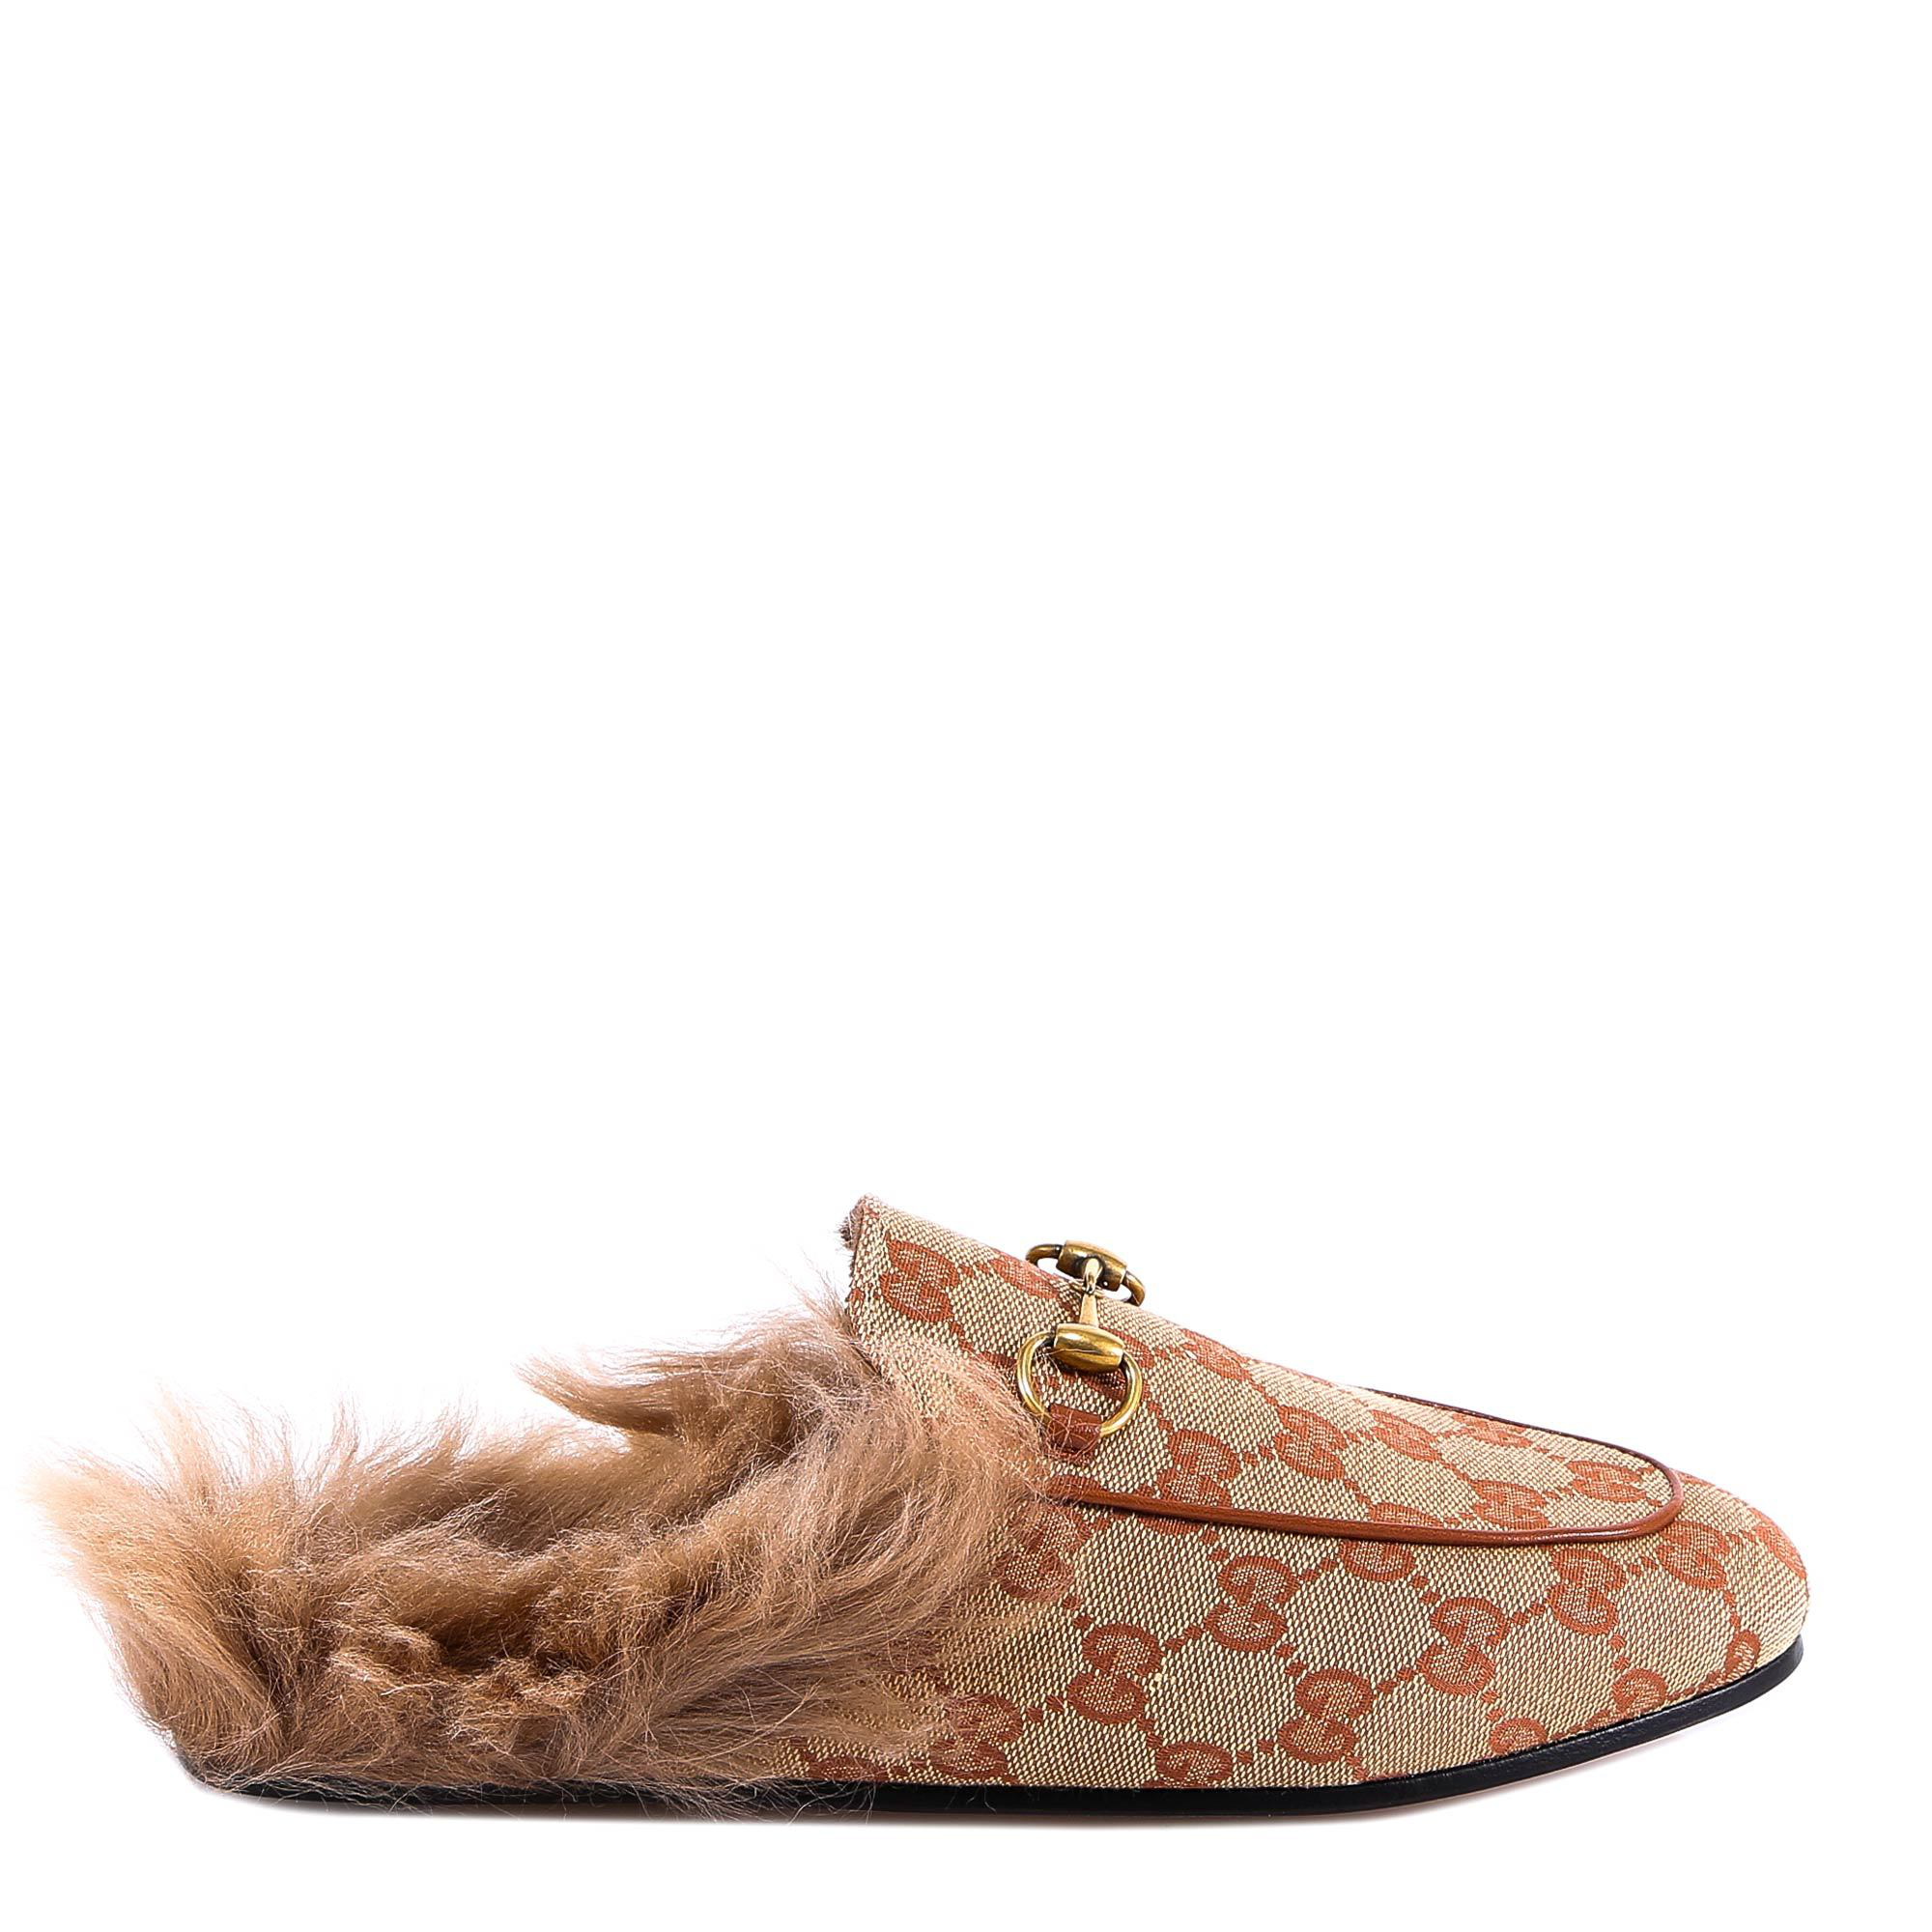 dbd8fc2fa4f Gucci Princetown Canvas Slippers - Med. Brown